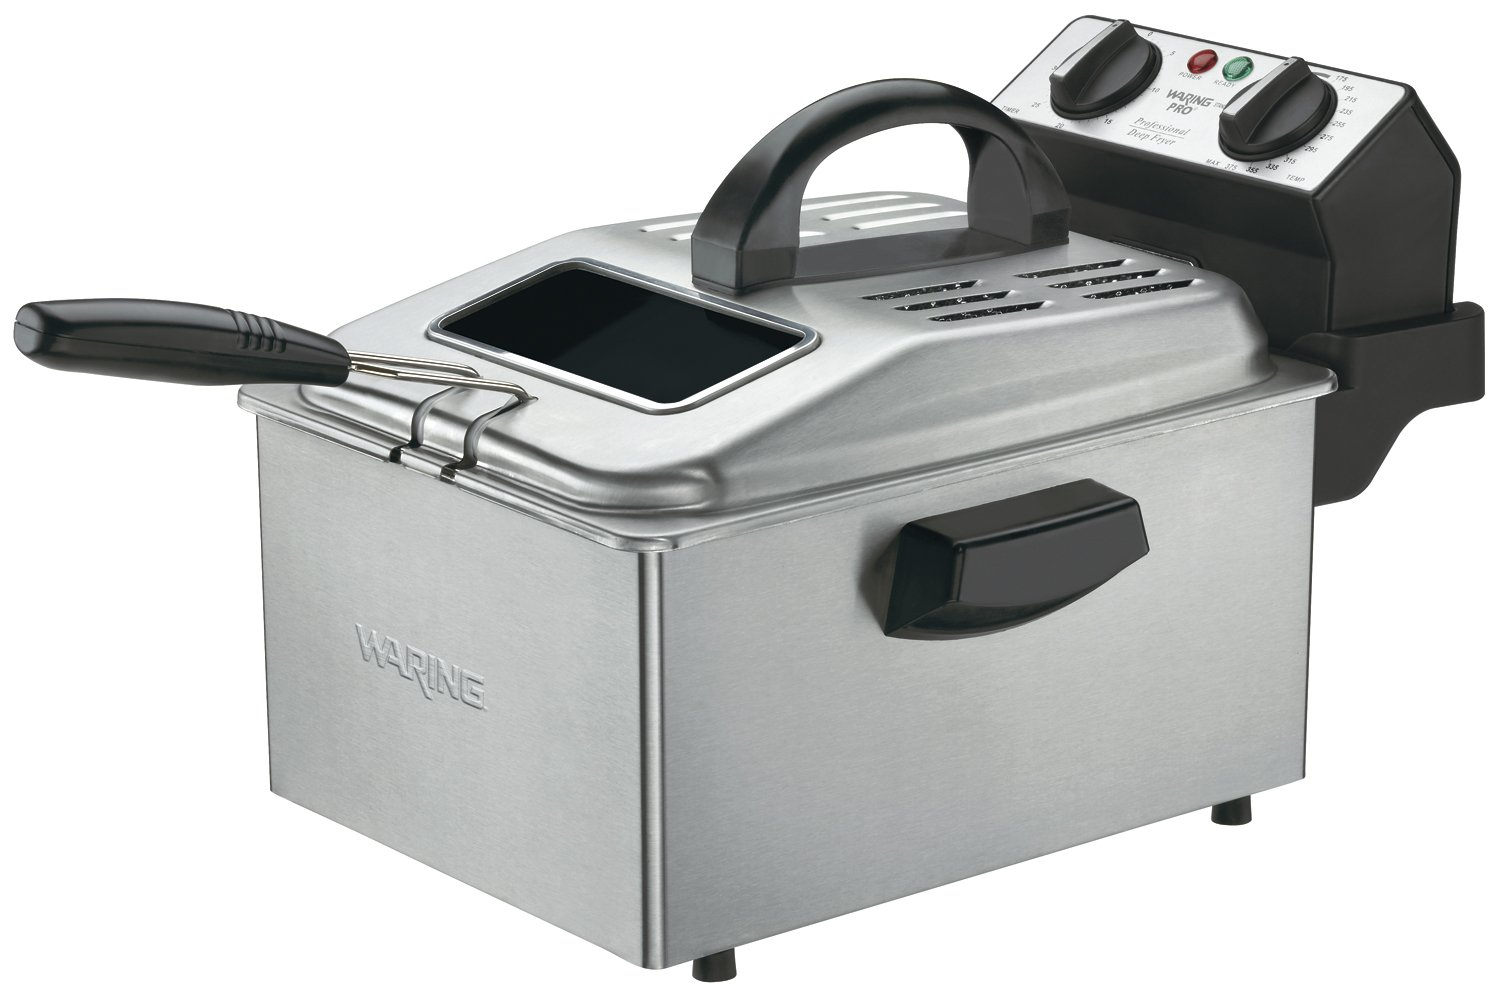 Waring DF280 Professional Deep Fryer Brushed Stainless at Sears.com